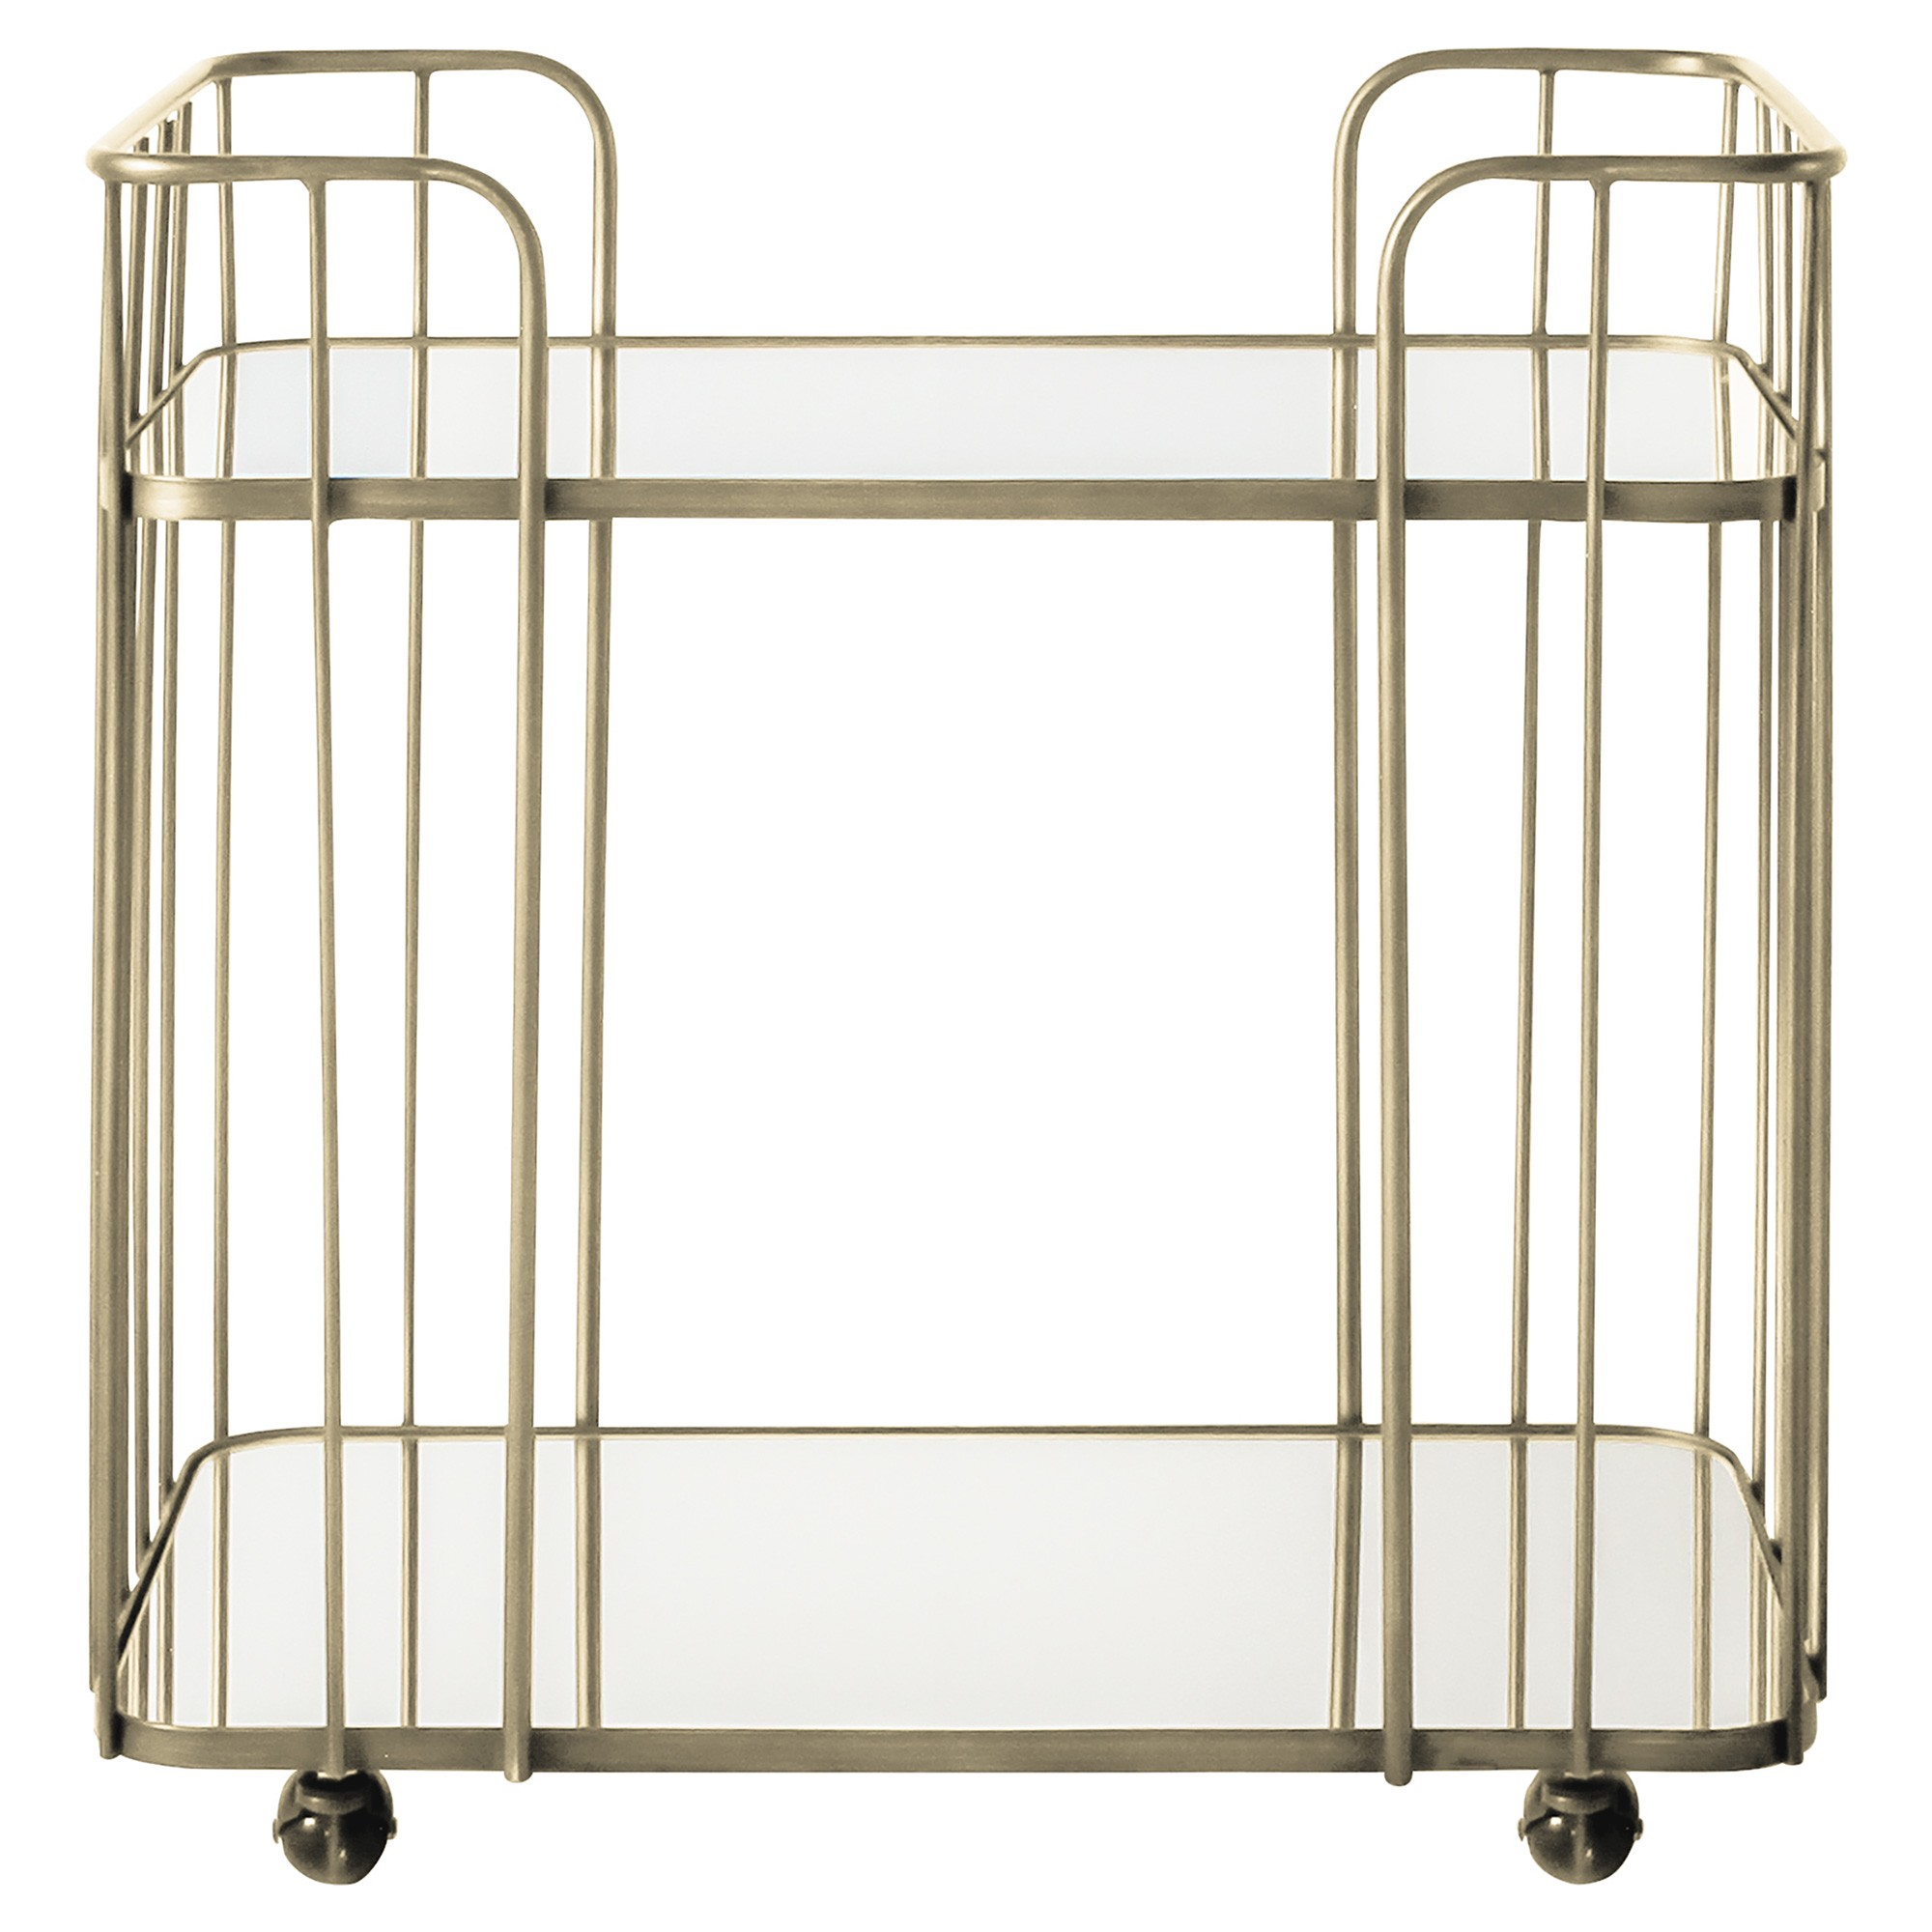 Verna Iron Drinks Trolley, Champagne Gold